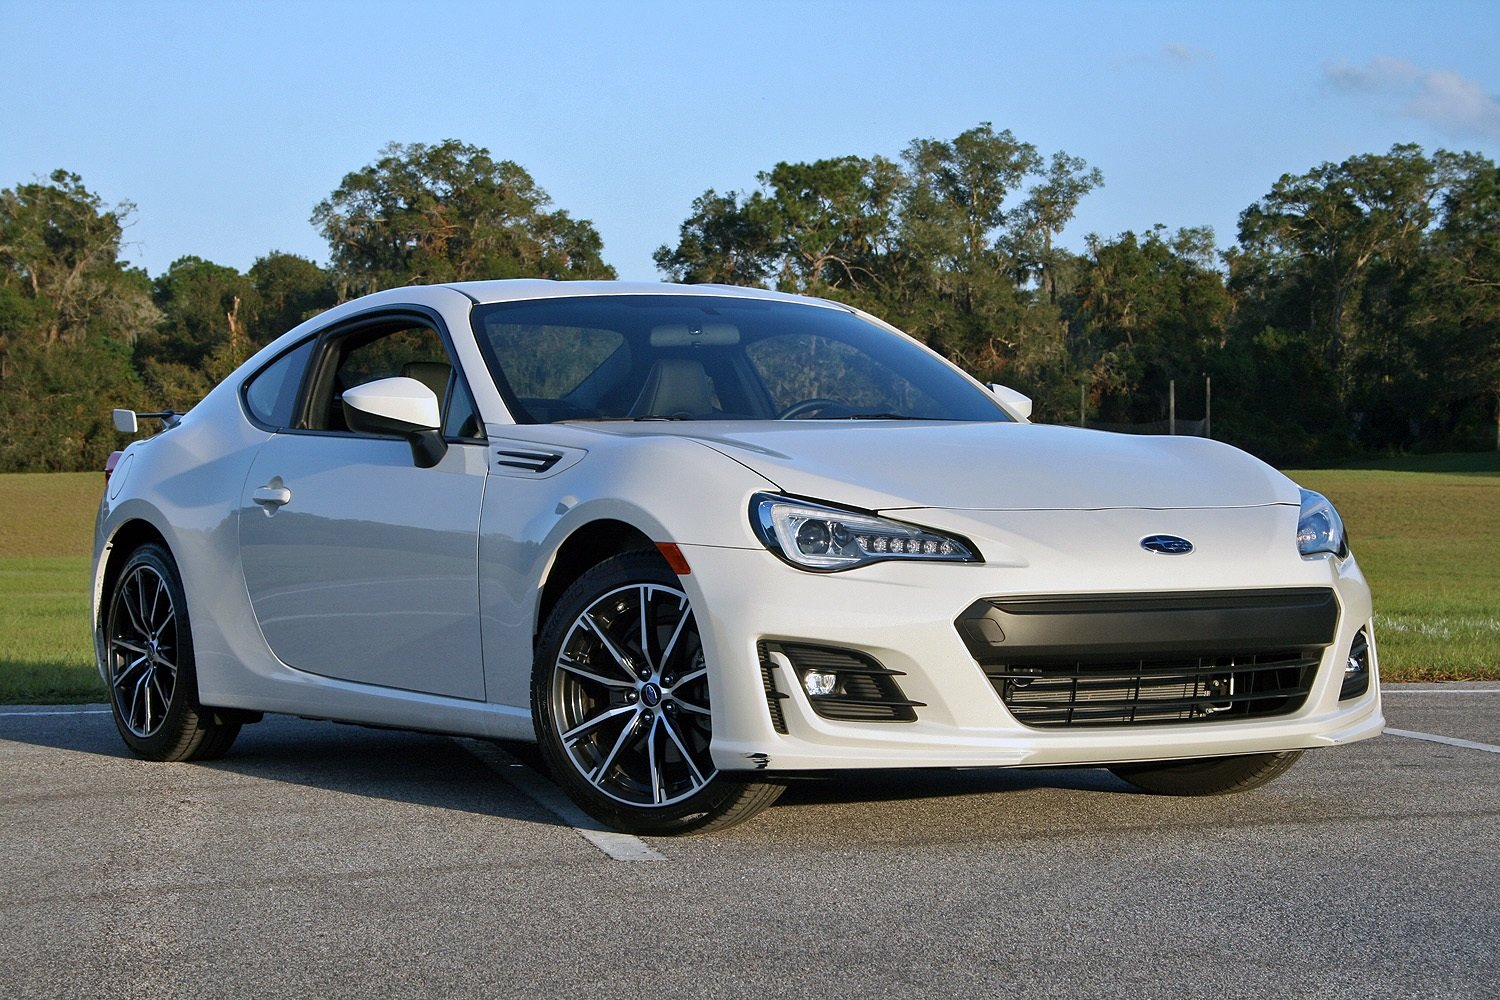 823c3998fb43 Recent rumors suggested that Toyota and Subaru were going to pull the plug  on the GT86 BRZ models as early as next year